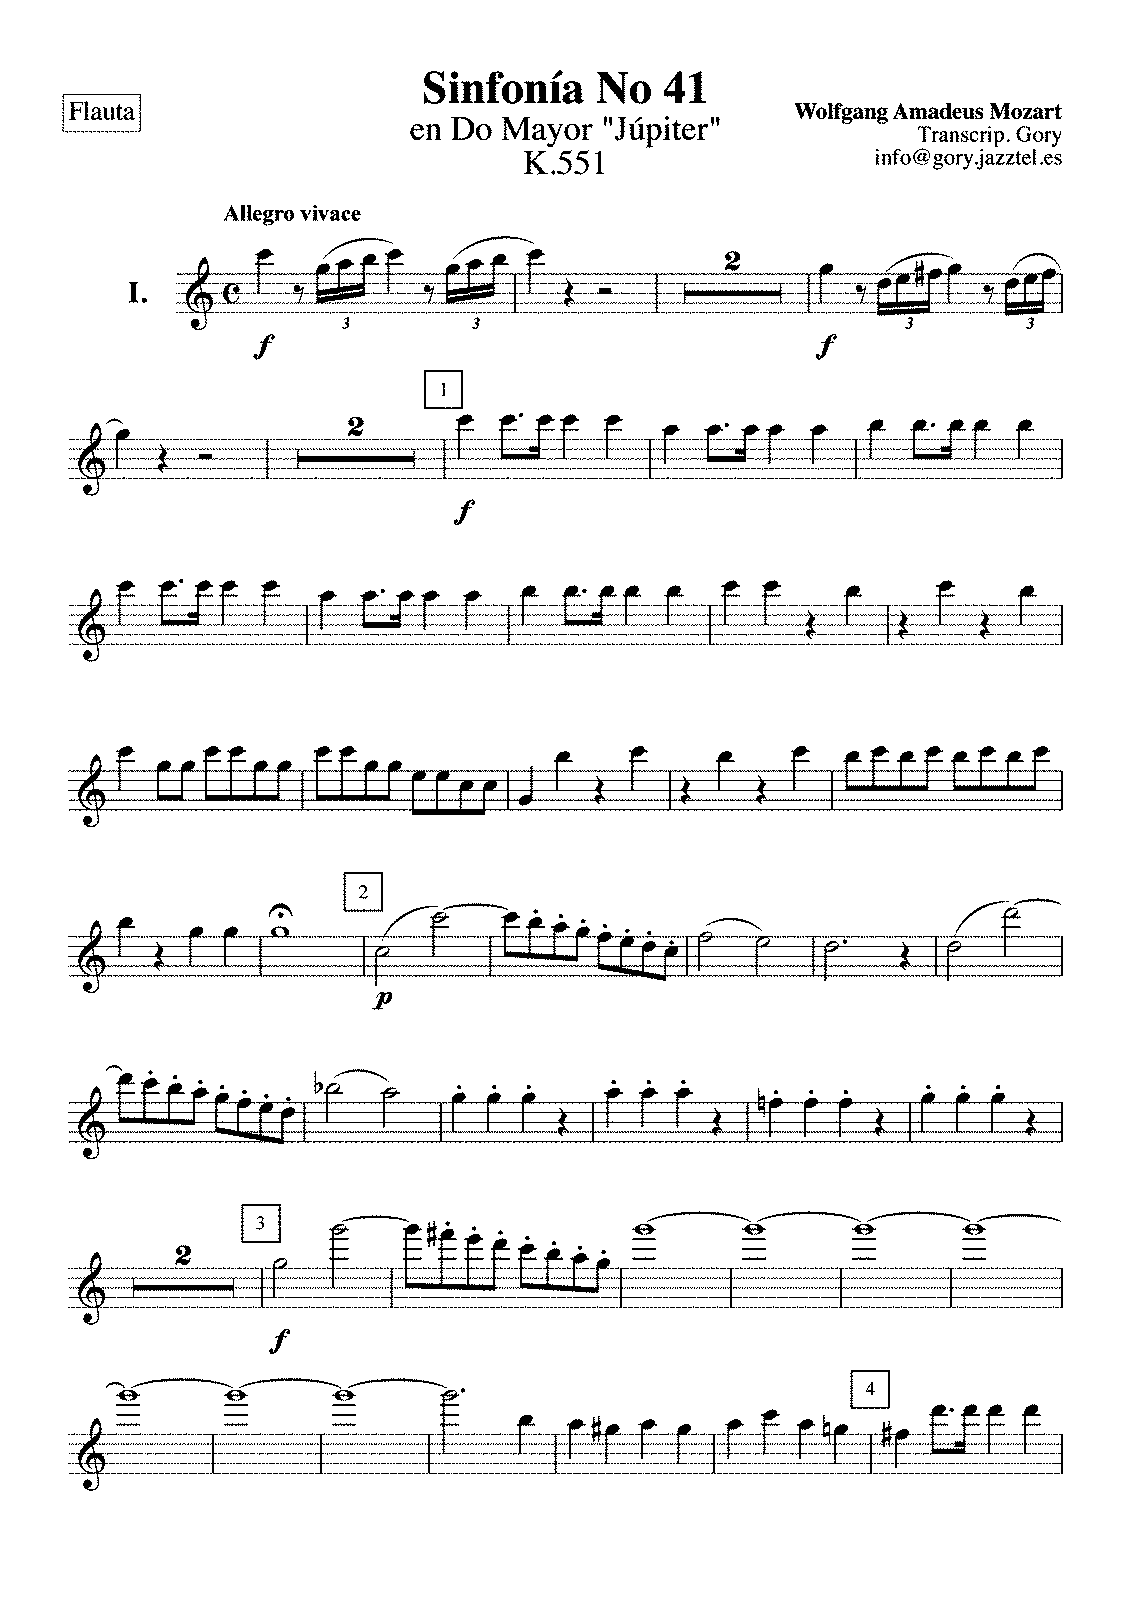 PMLP01573-Sinfonia nº 41 en Do mayor - Flauta.pdf